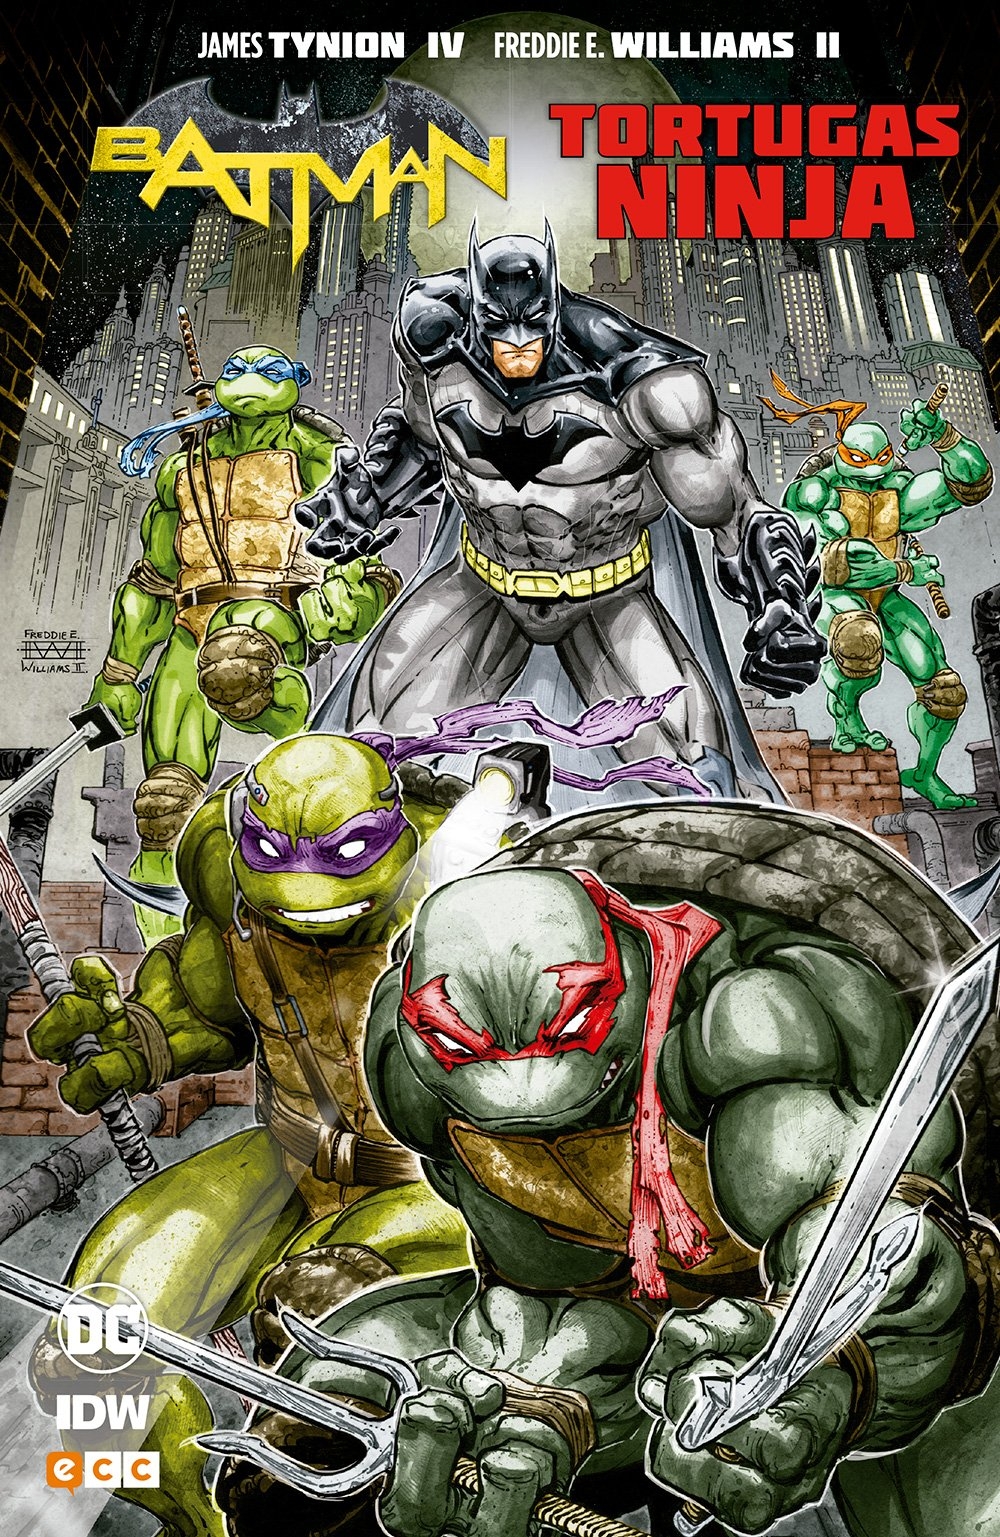 Batman/Tortugas Ninja (2a edición): James Tynion IV ...